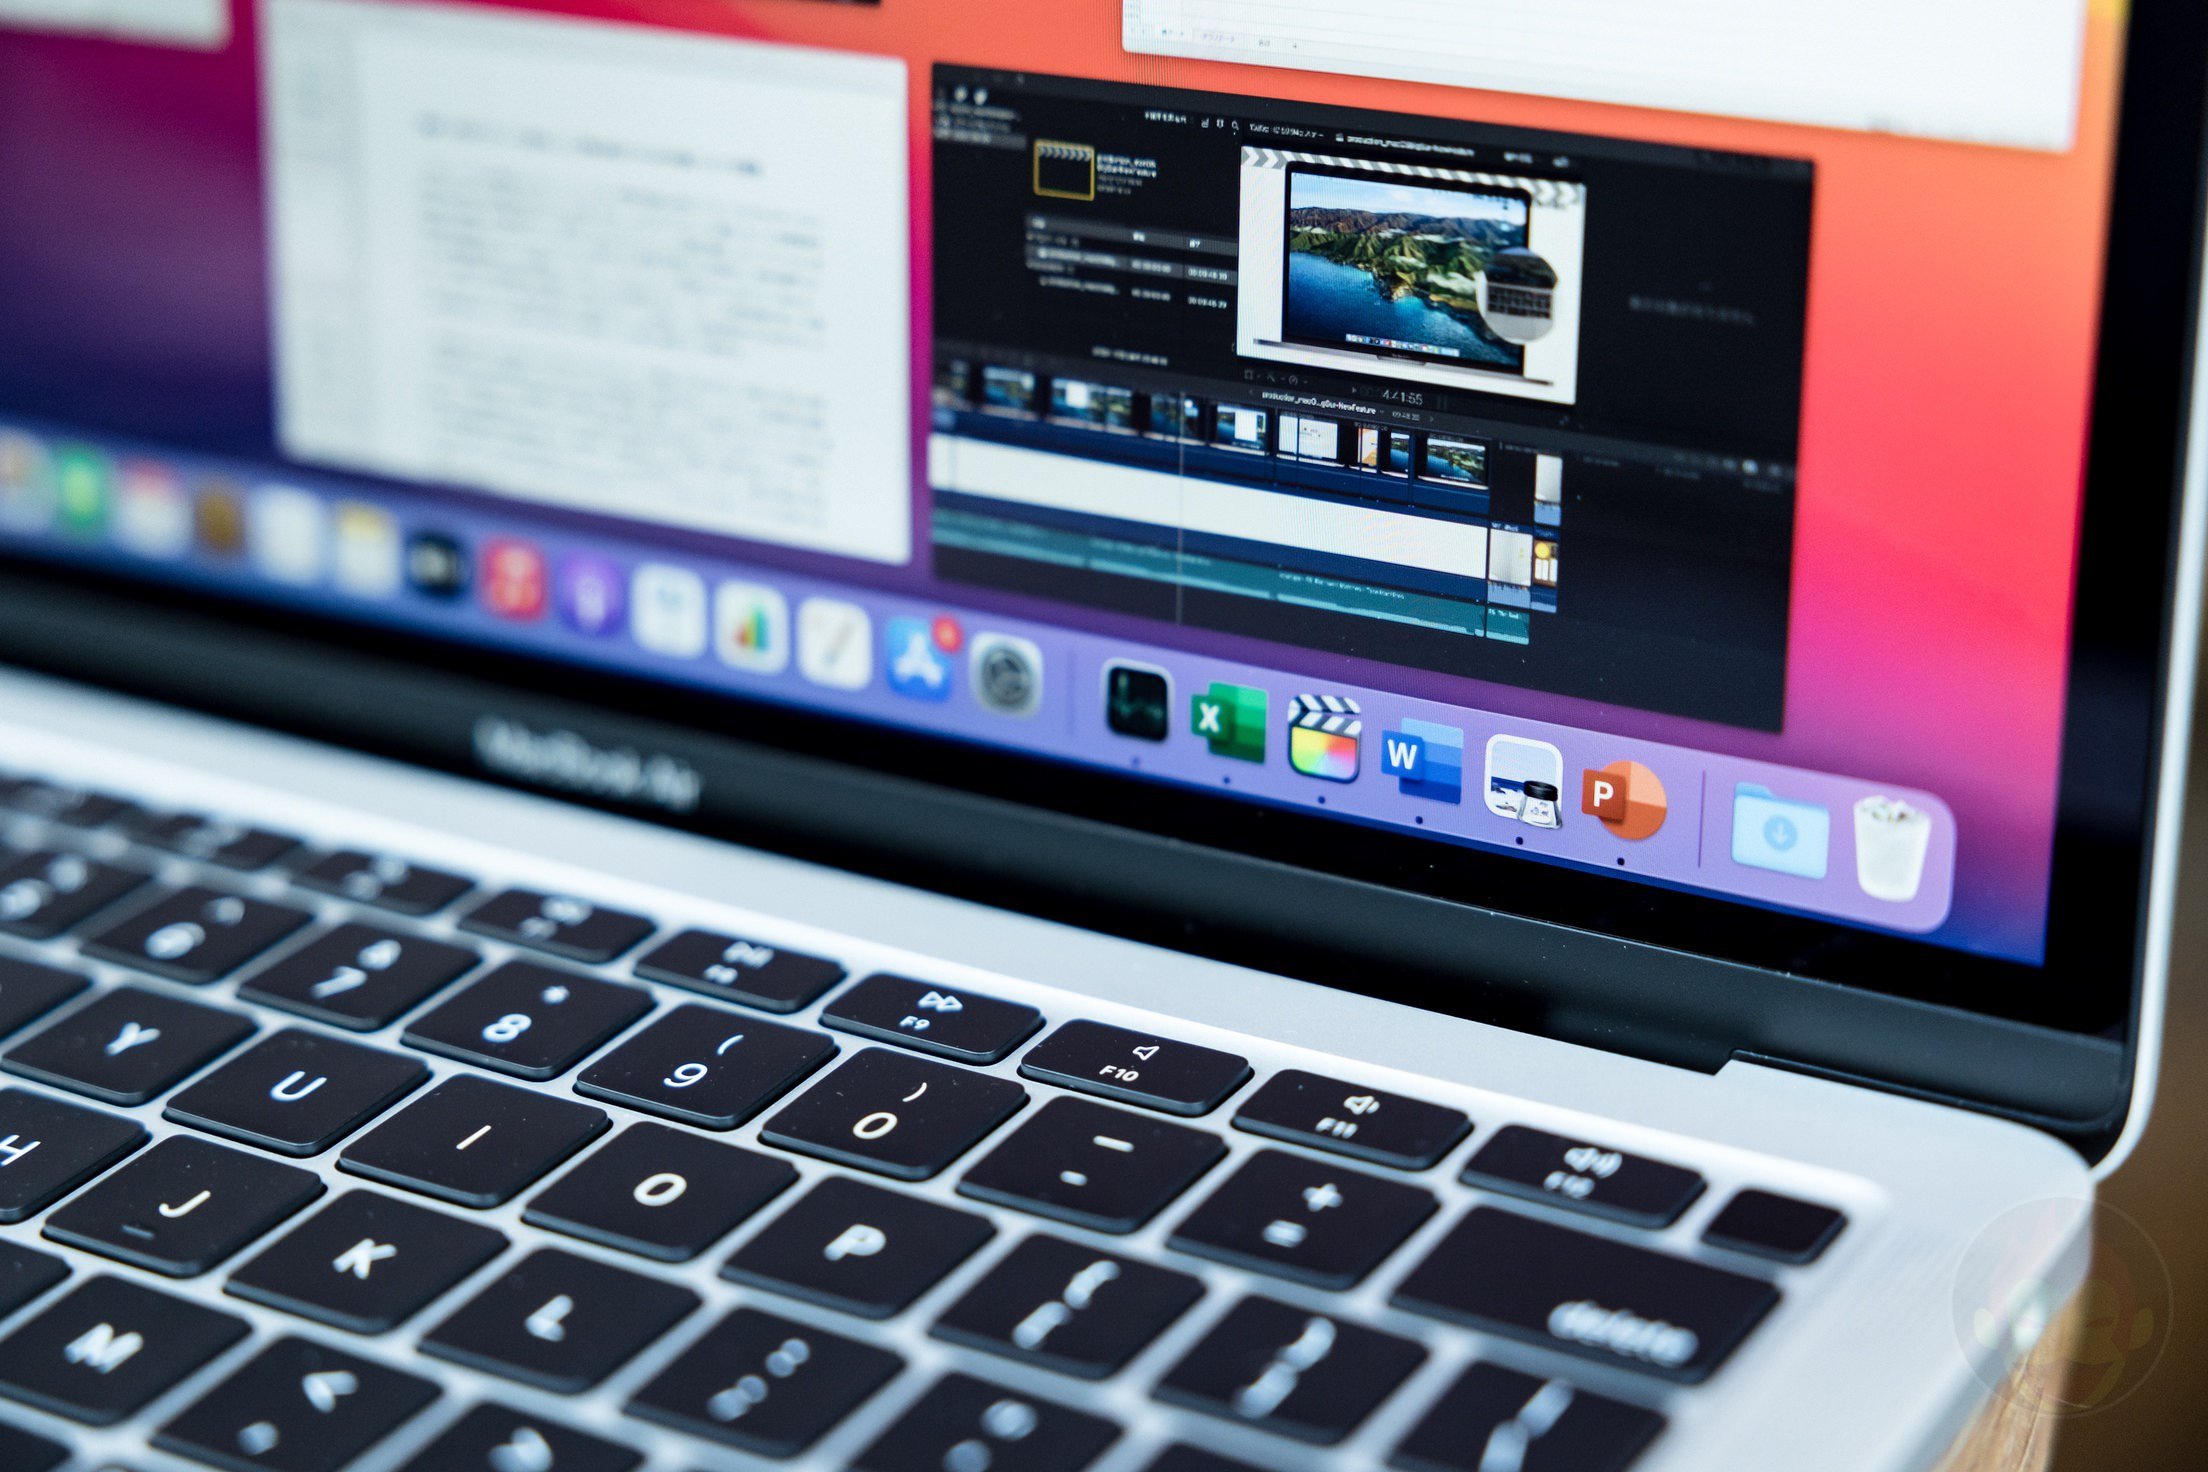 Reviewing the M1 MacBook Pro 2020 at factory 02